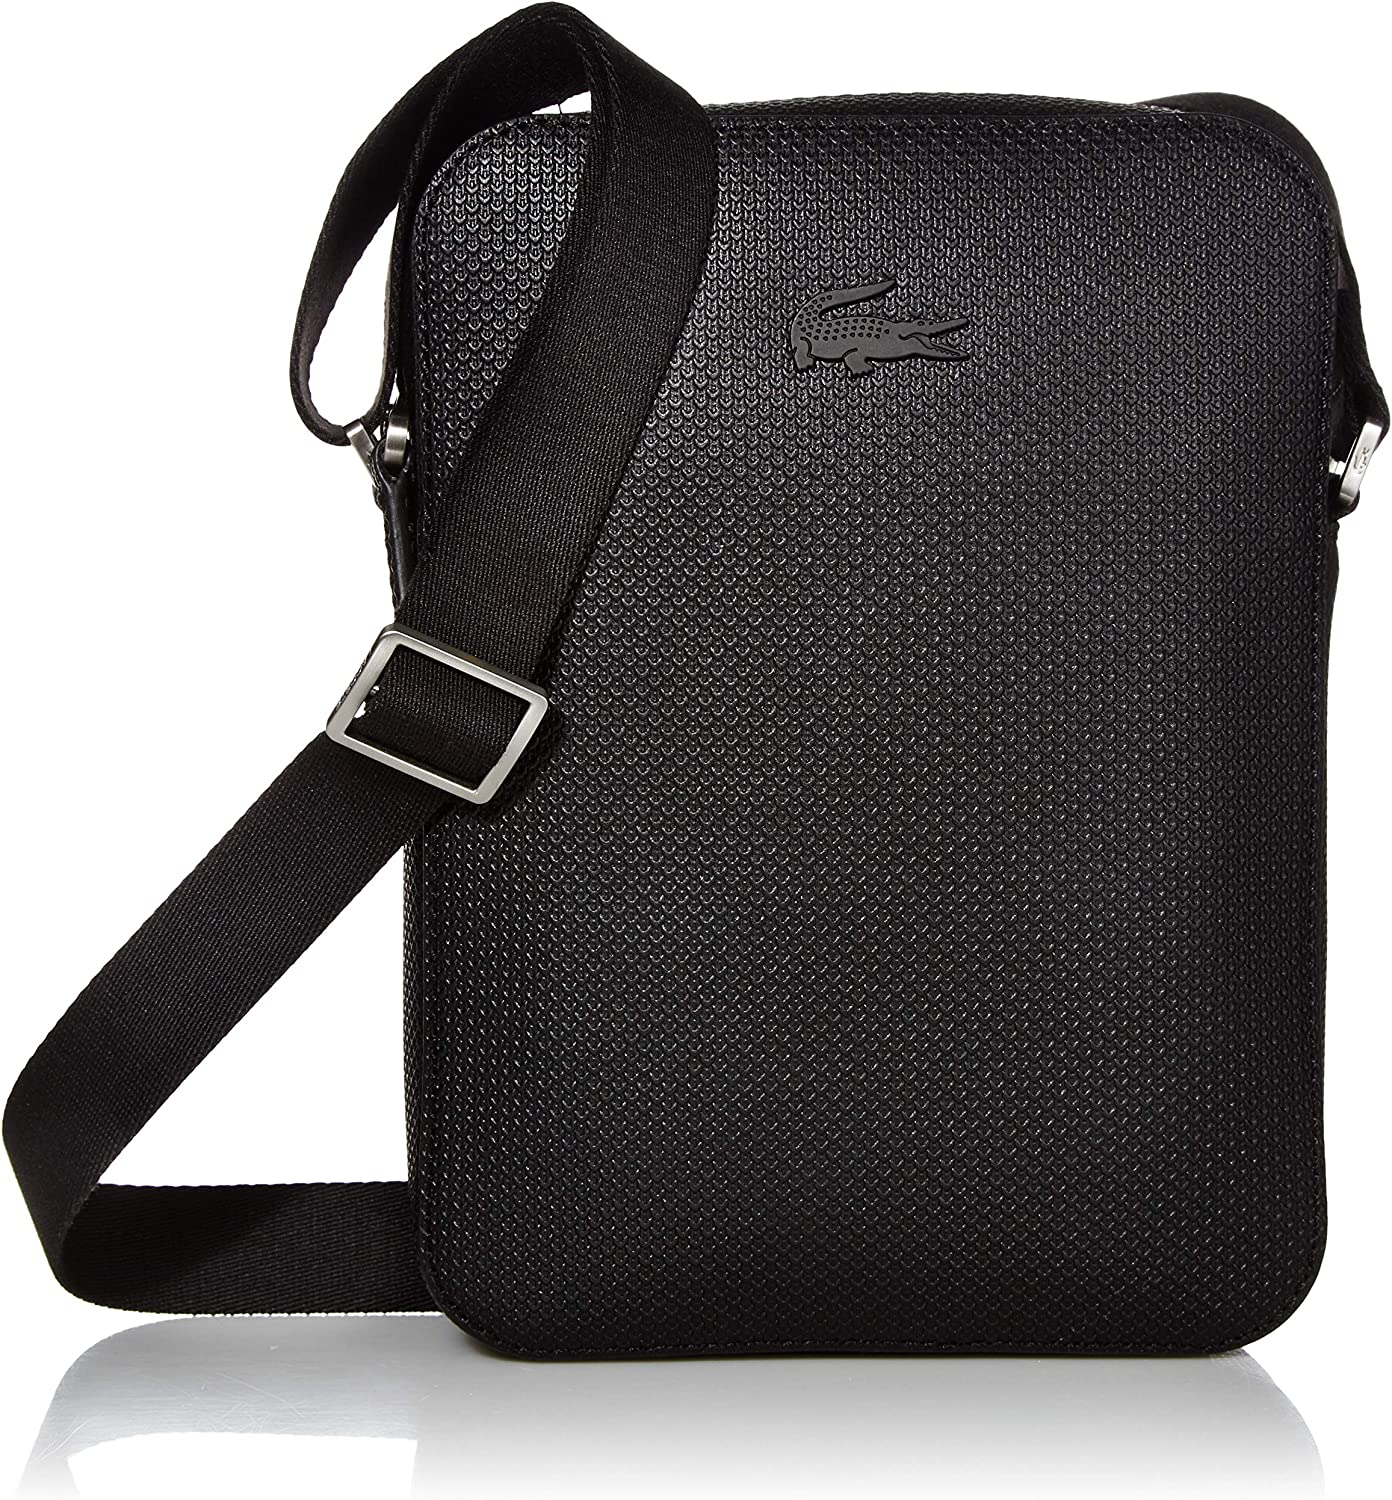 Lacoste Men's Chantaco Vertical Camera Bag